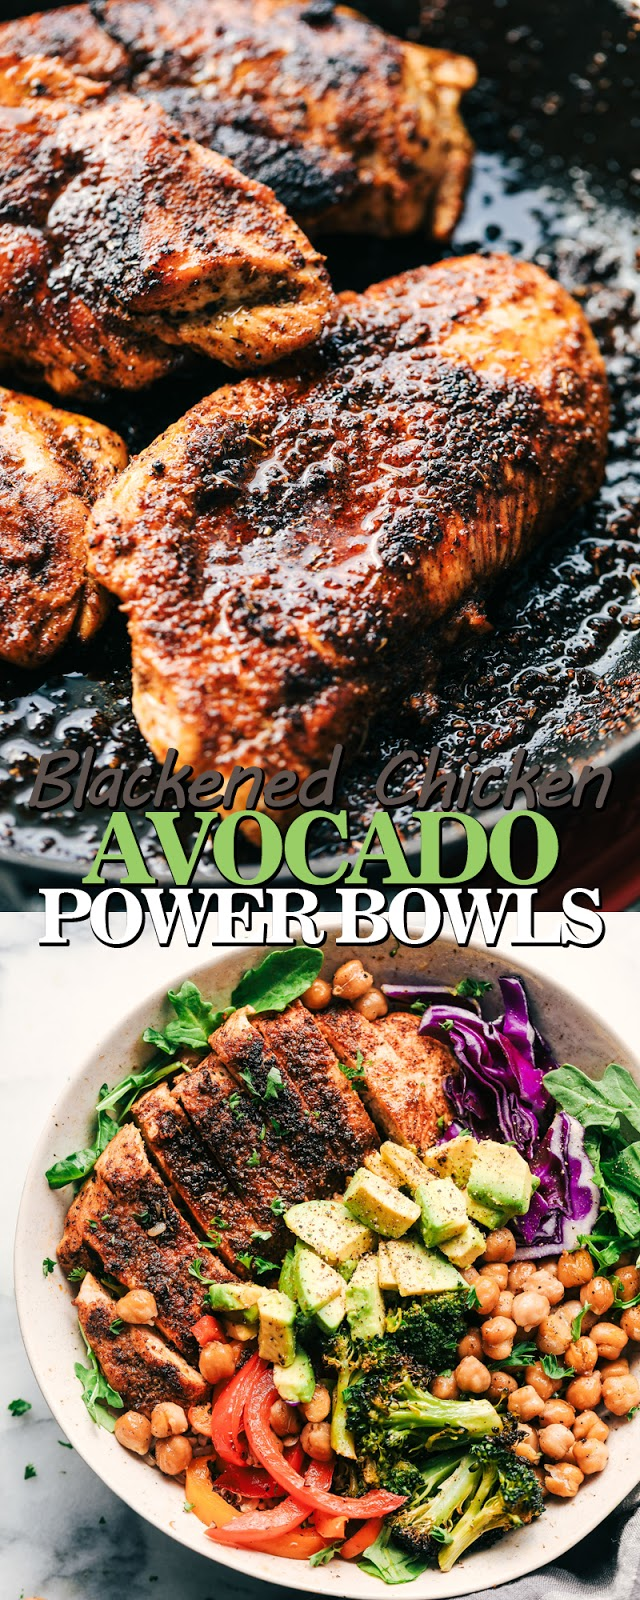 BLACKENED CHICKEN AVOCADO POWER BOWLS